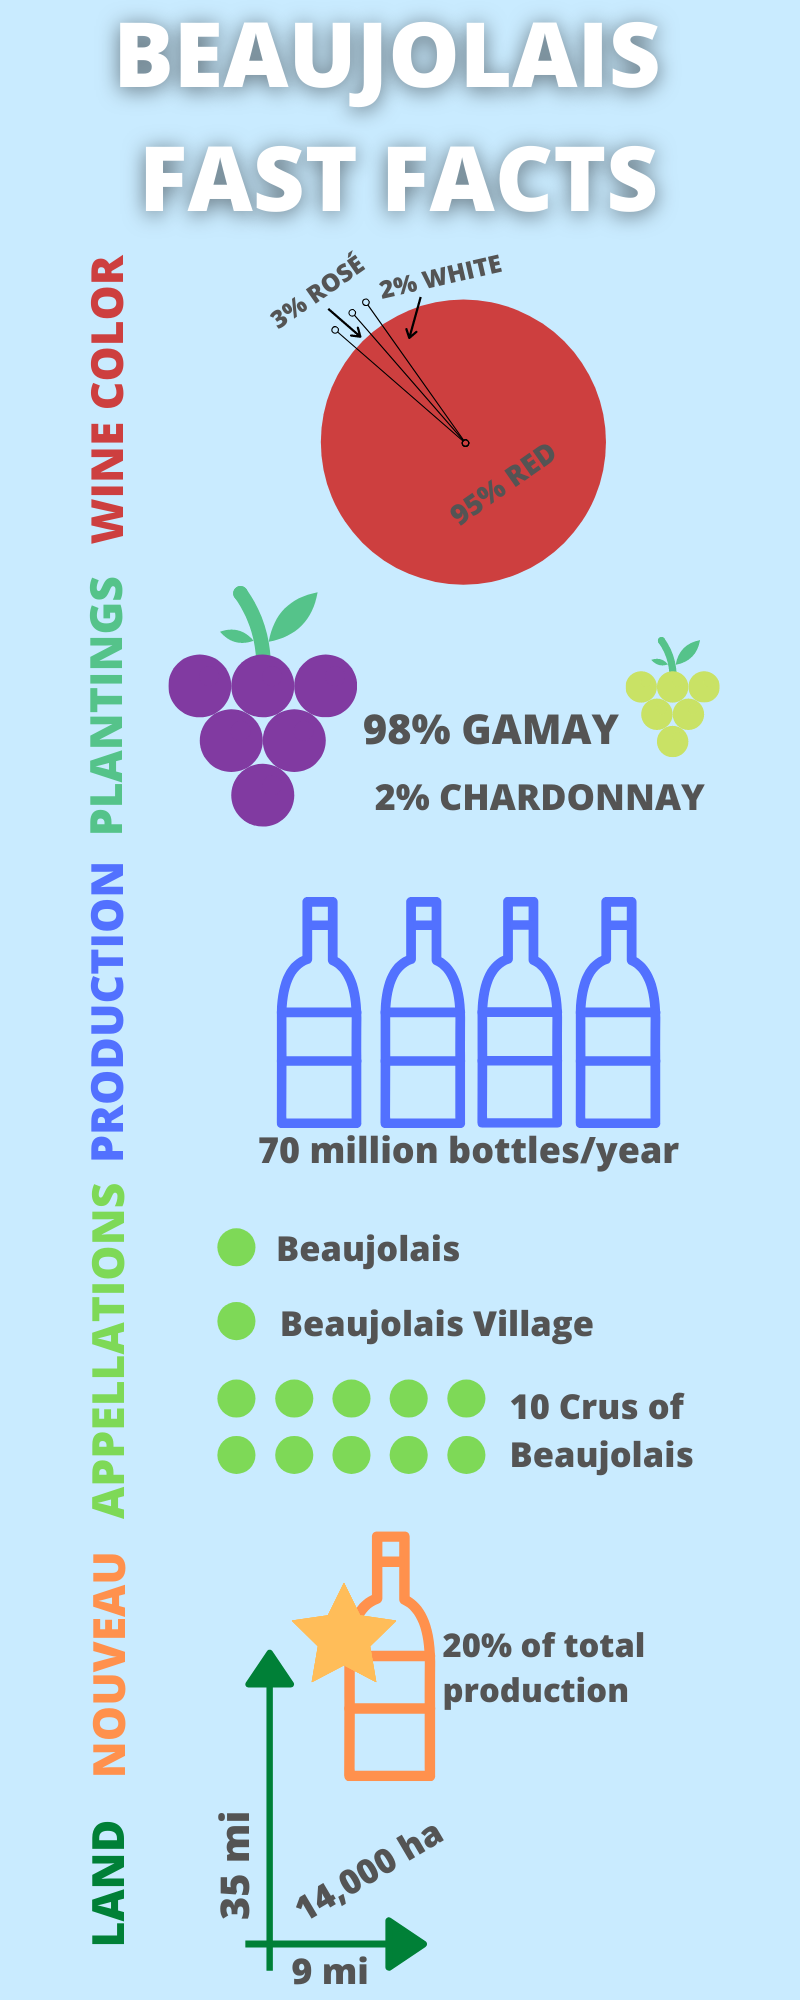 Beaujolais Fast Facts